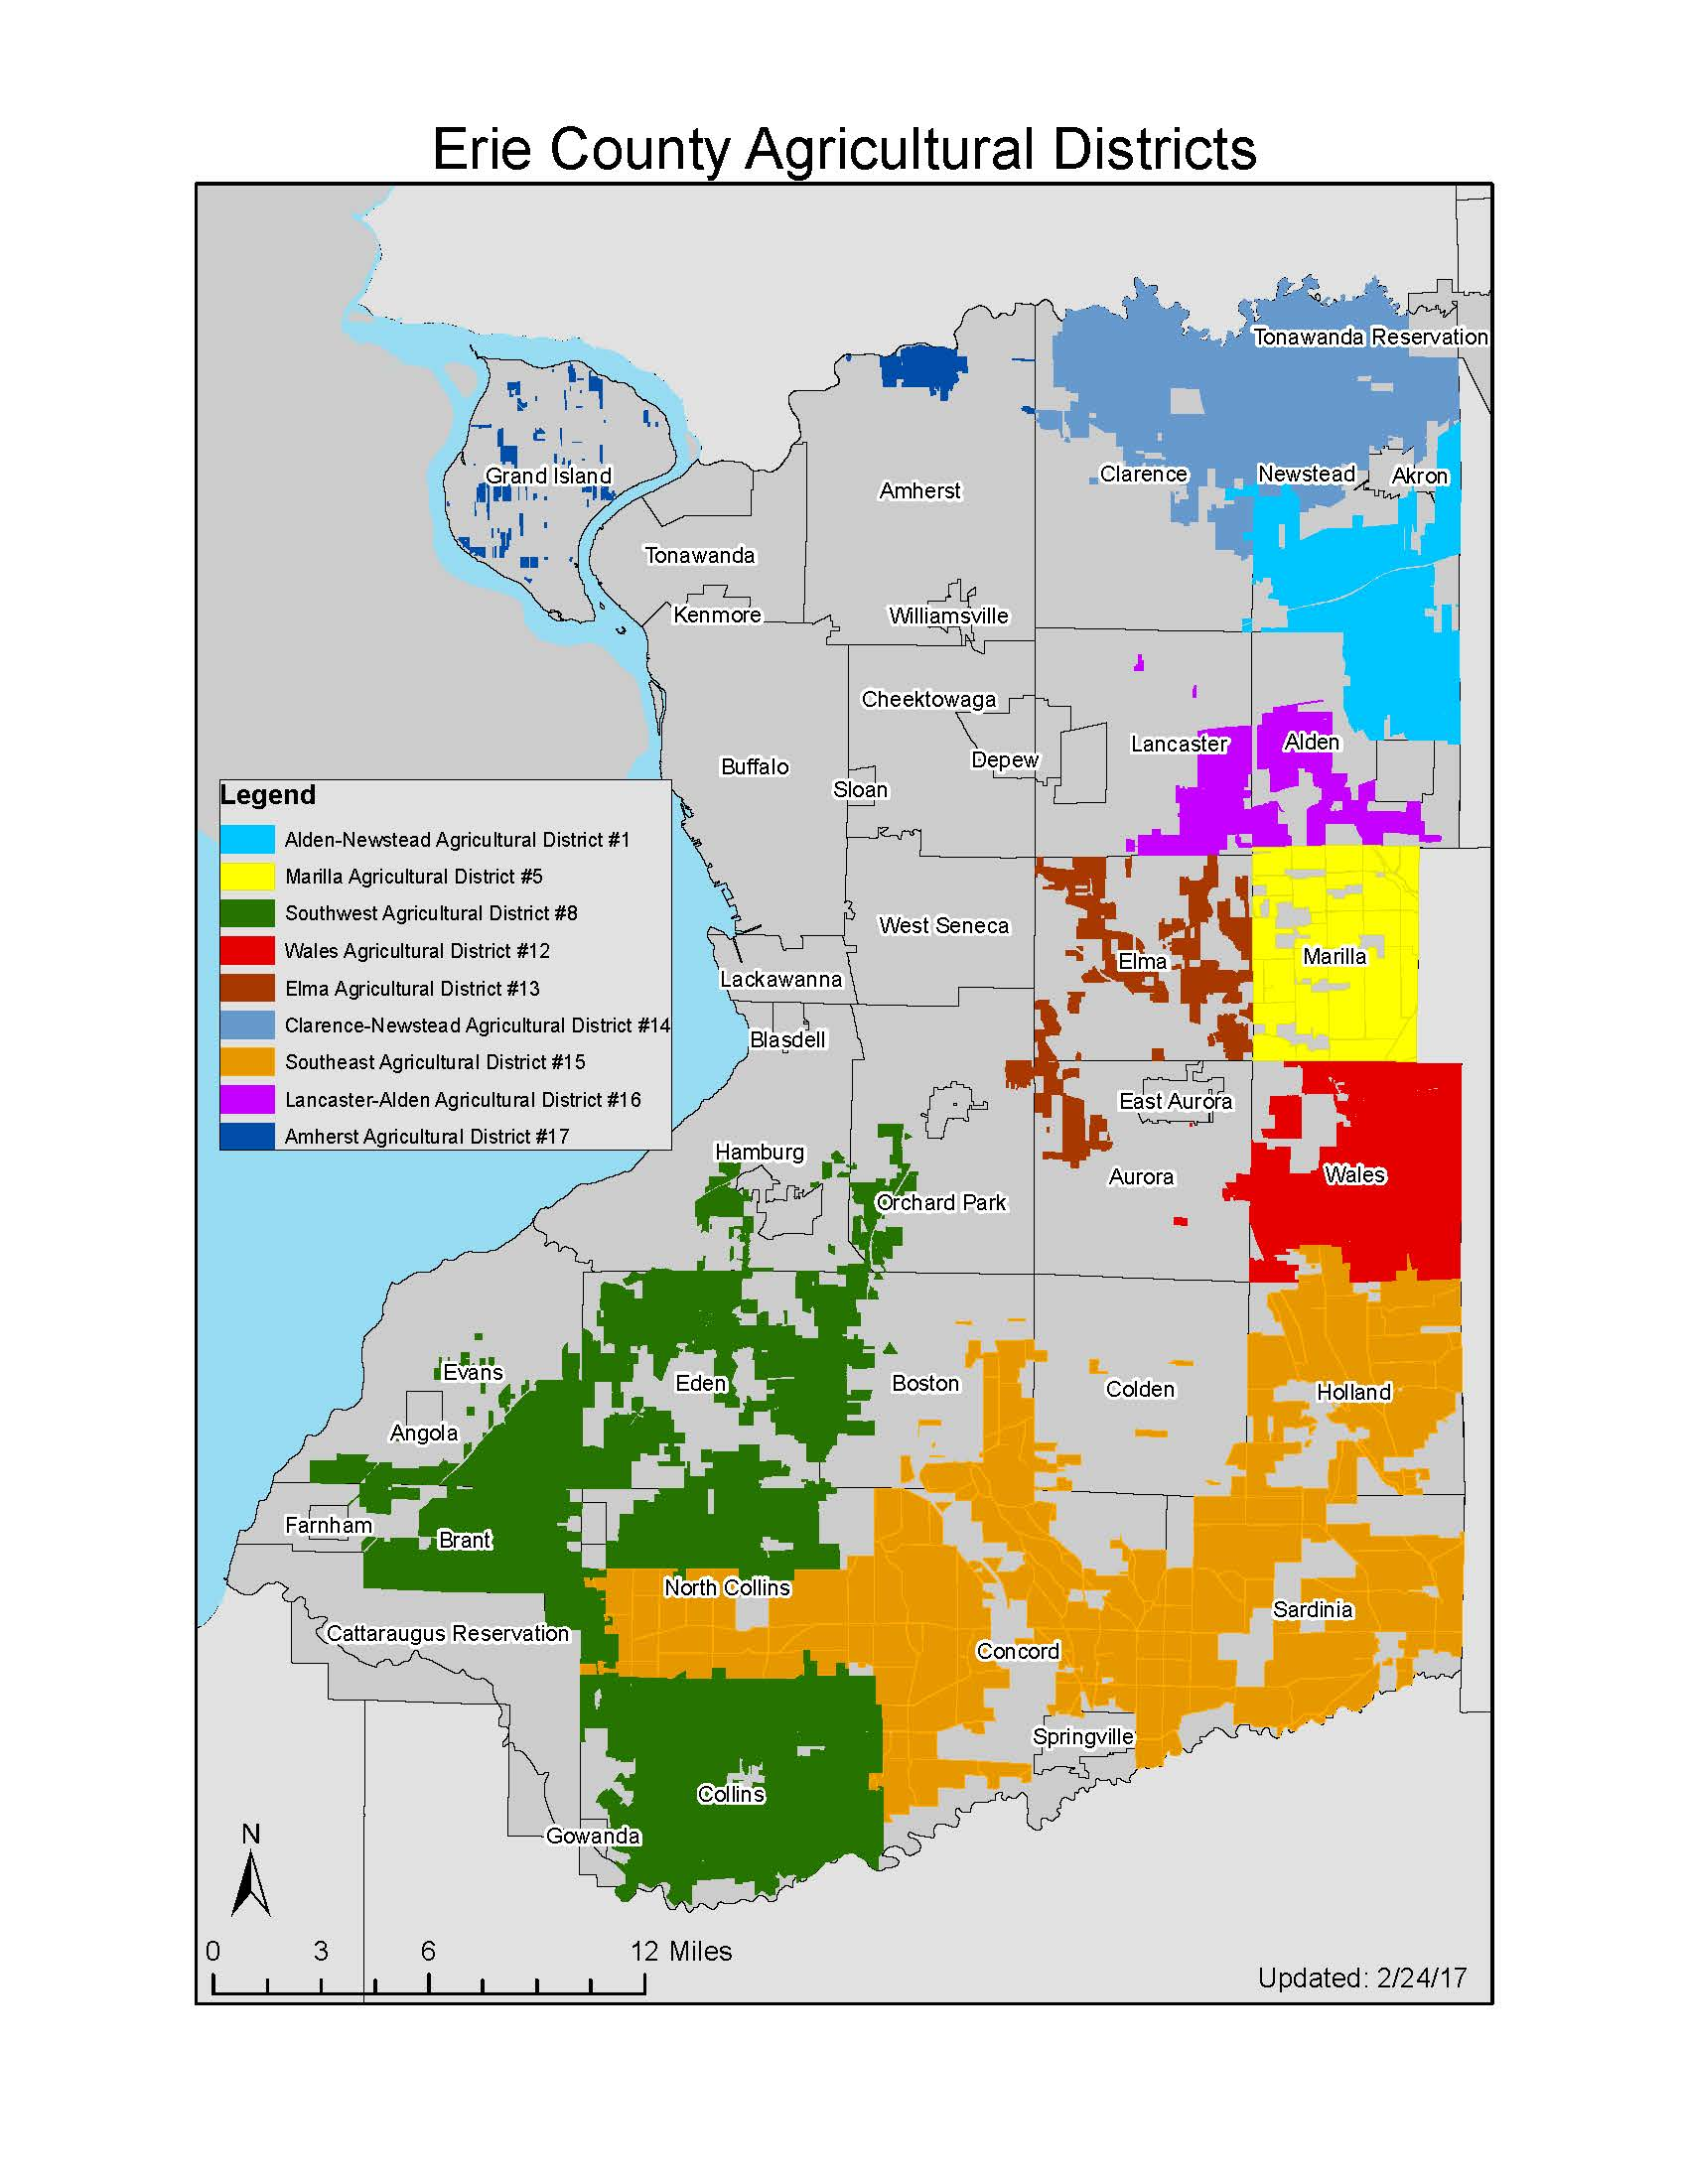 Map of All Erie County Agricultural Districts 2017